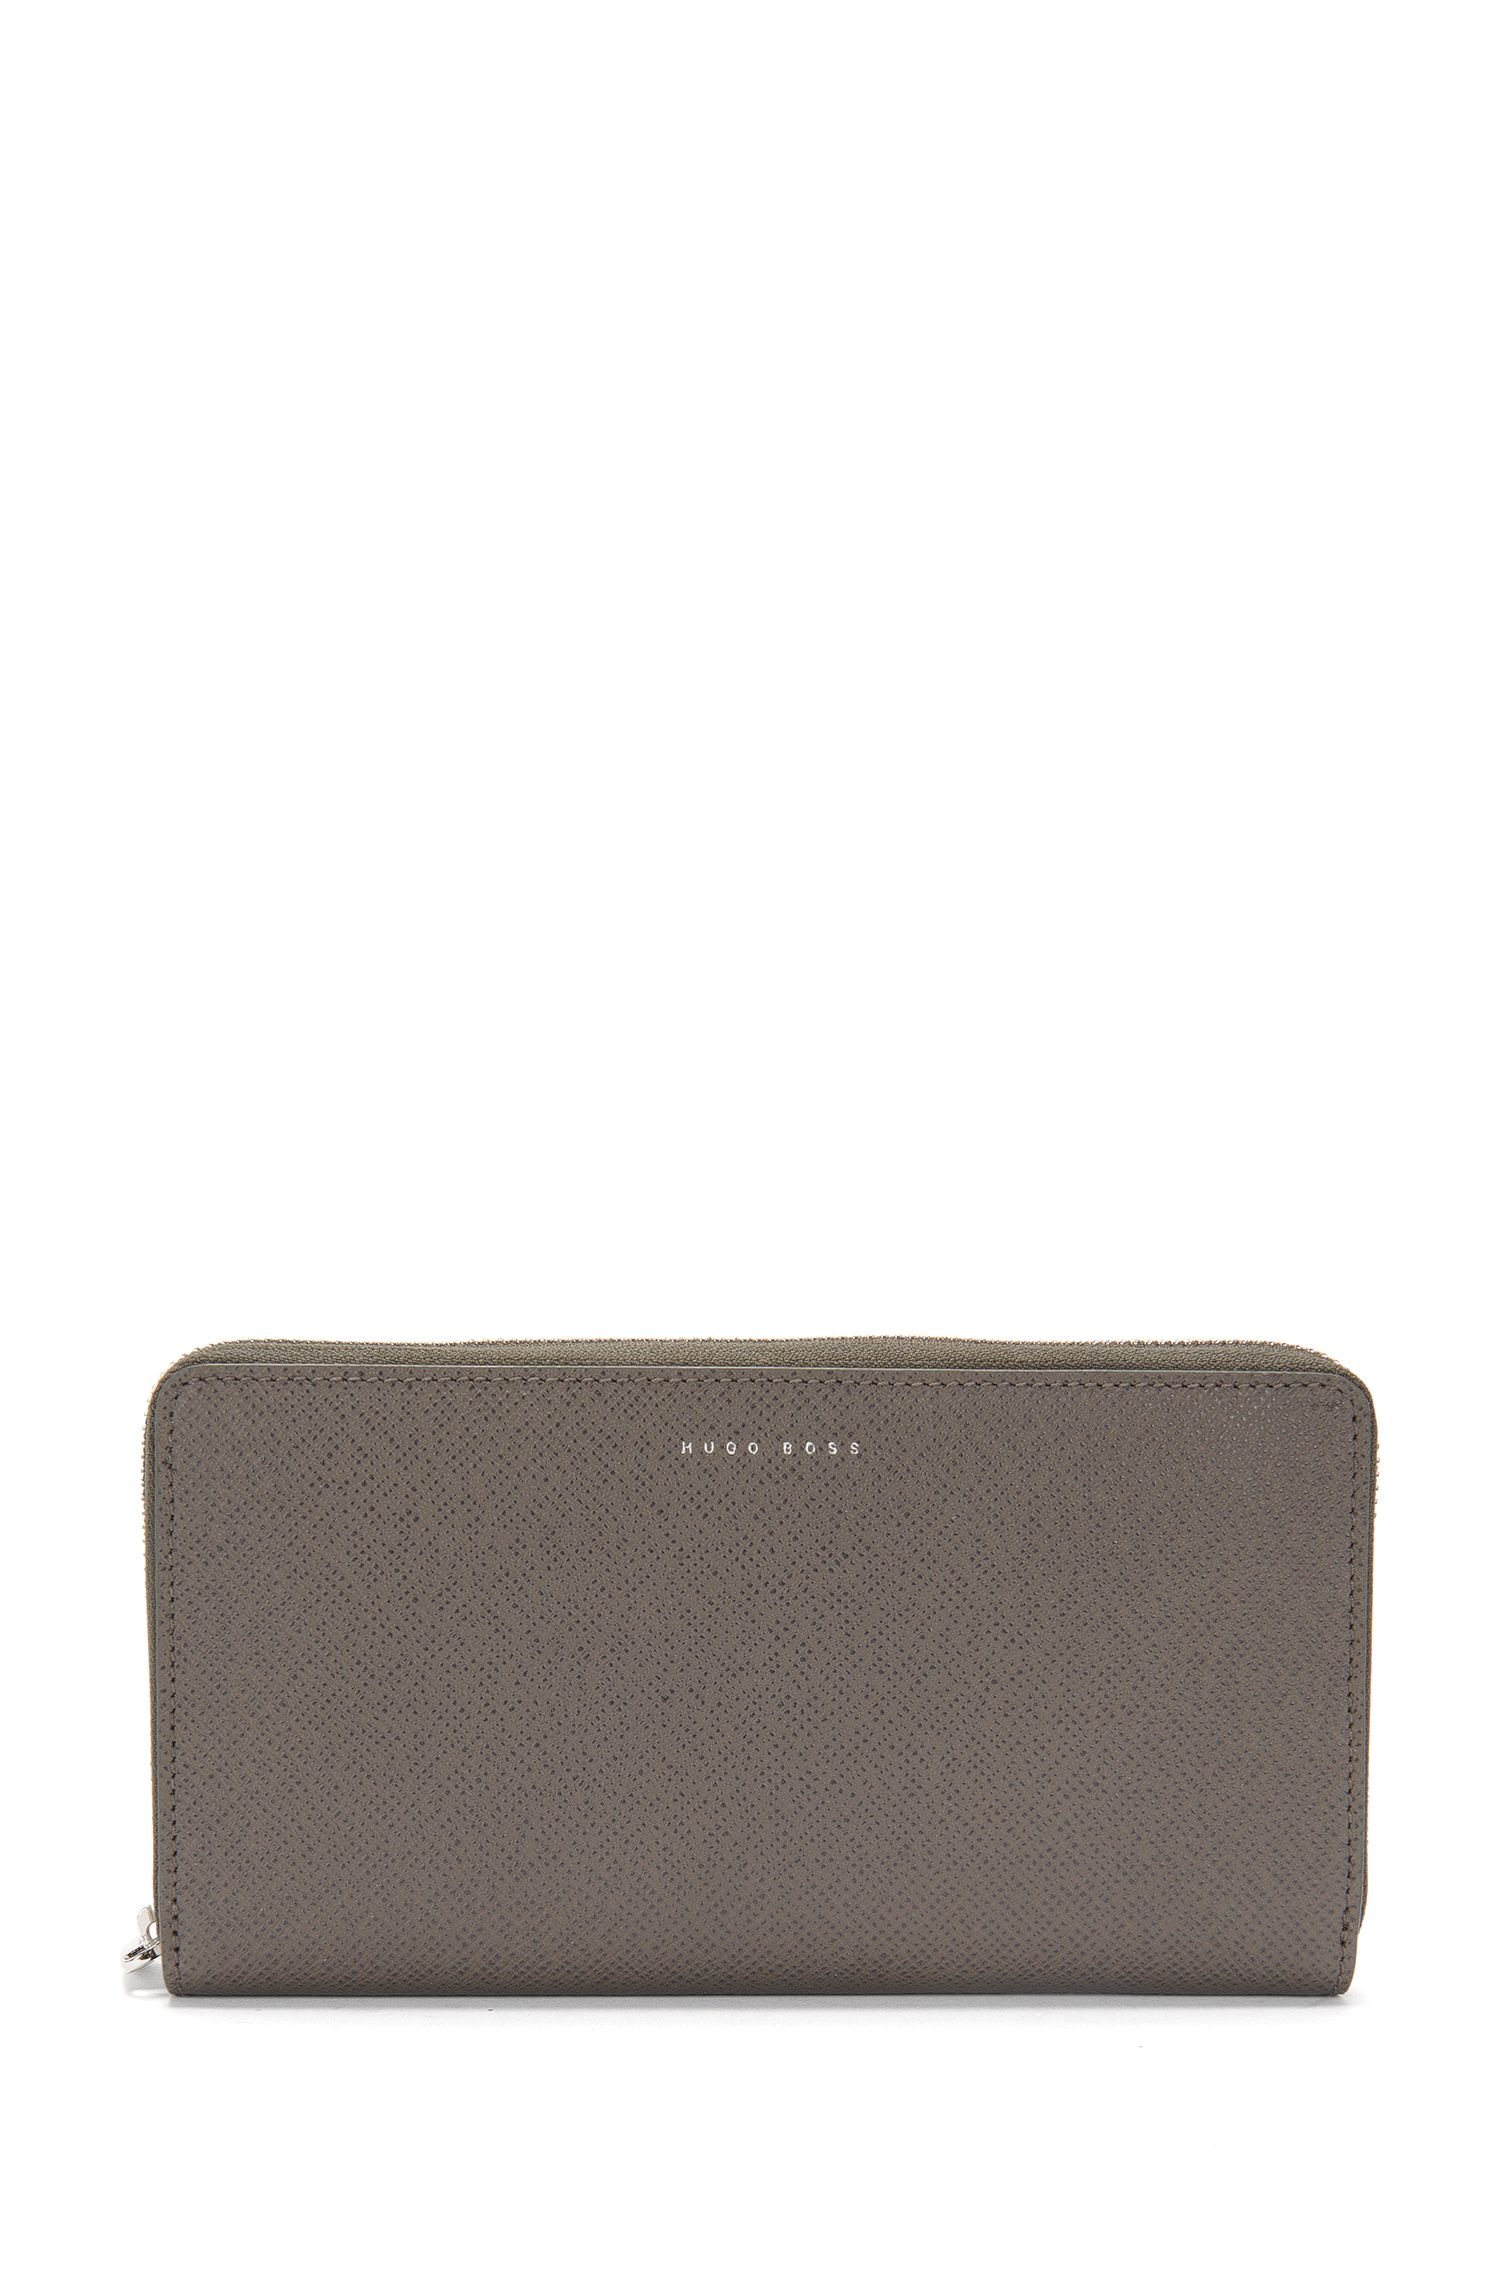 Signature Collection ziparound wallet in palmellato leather